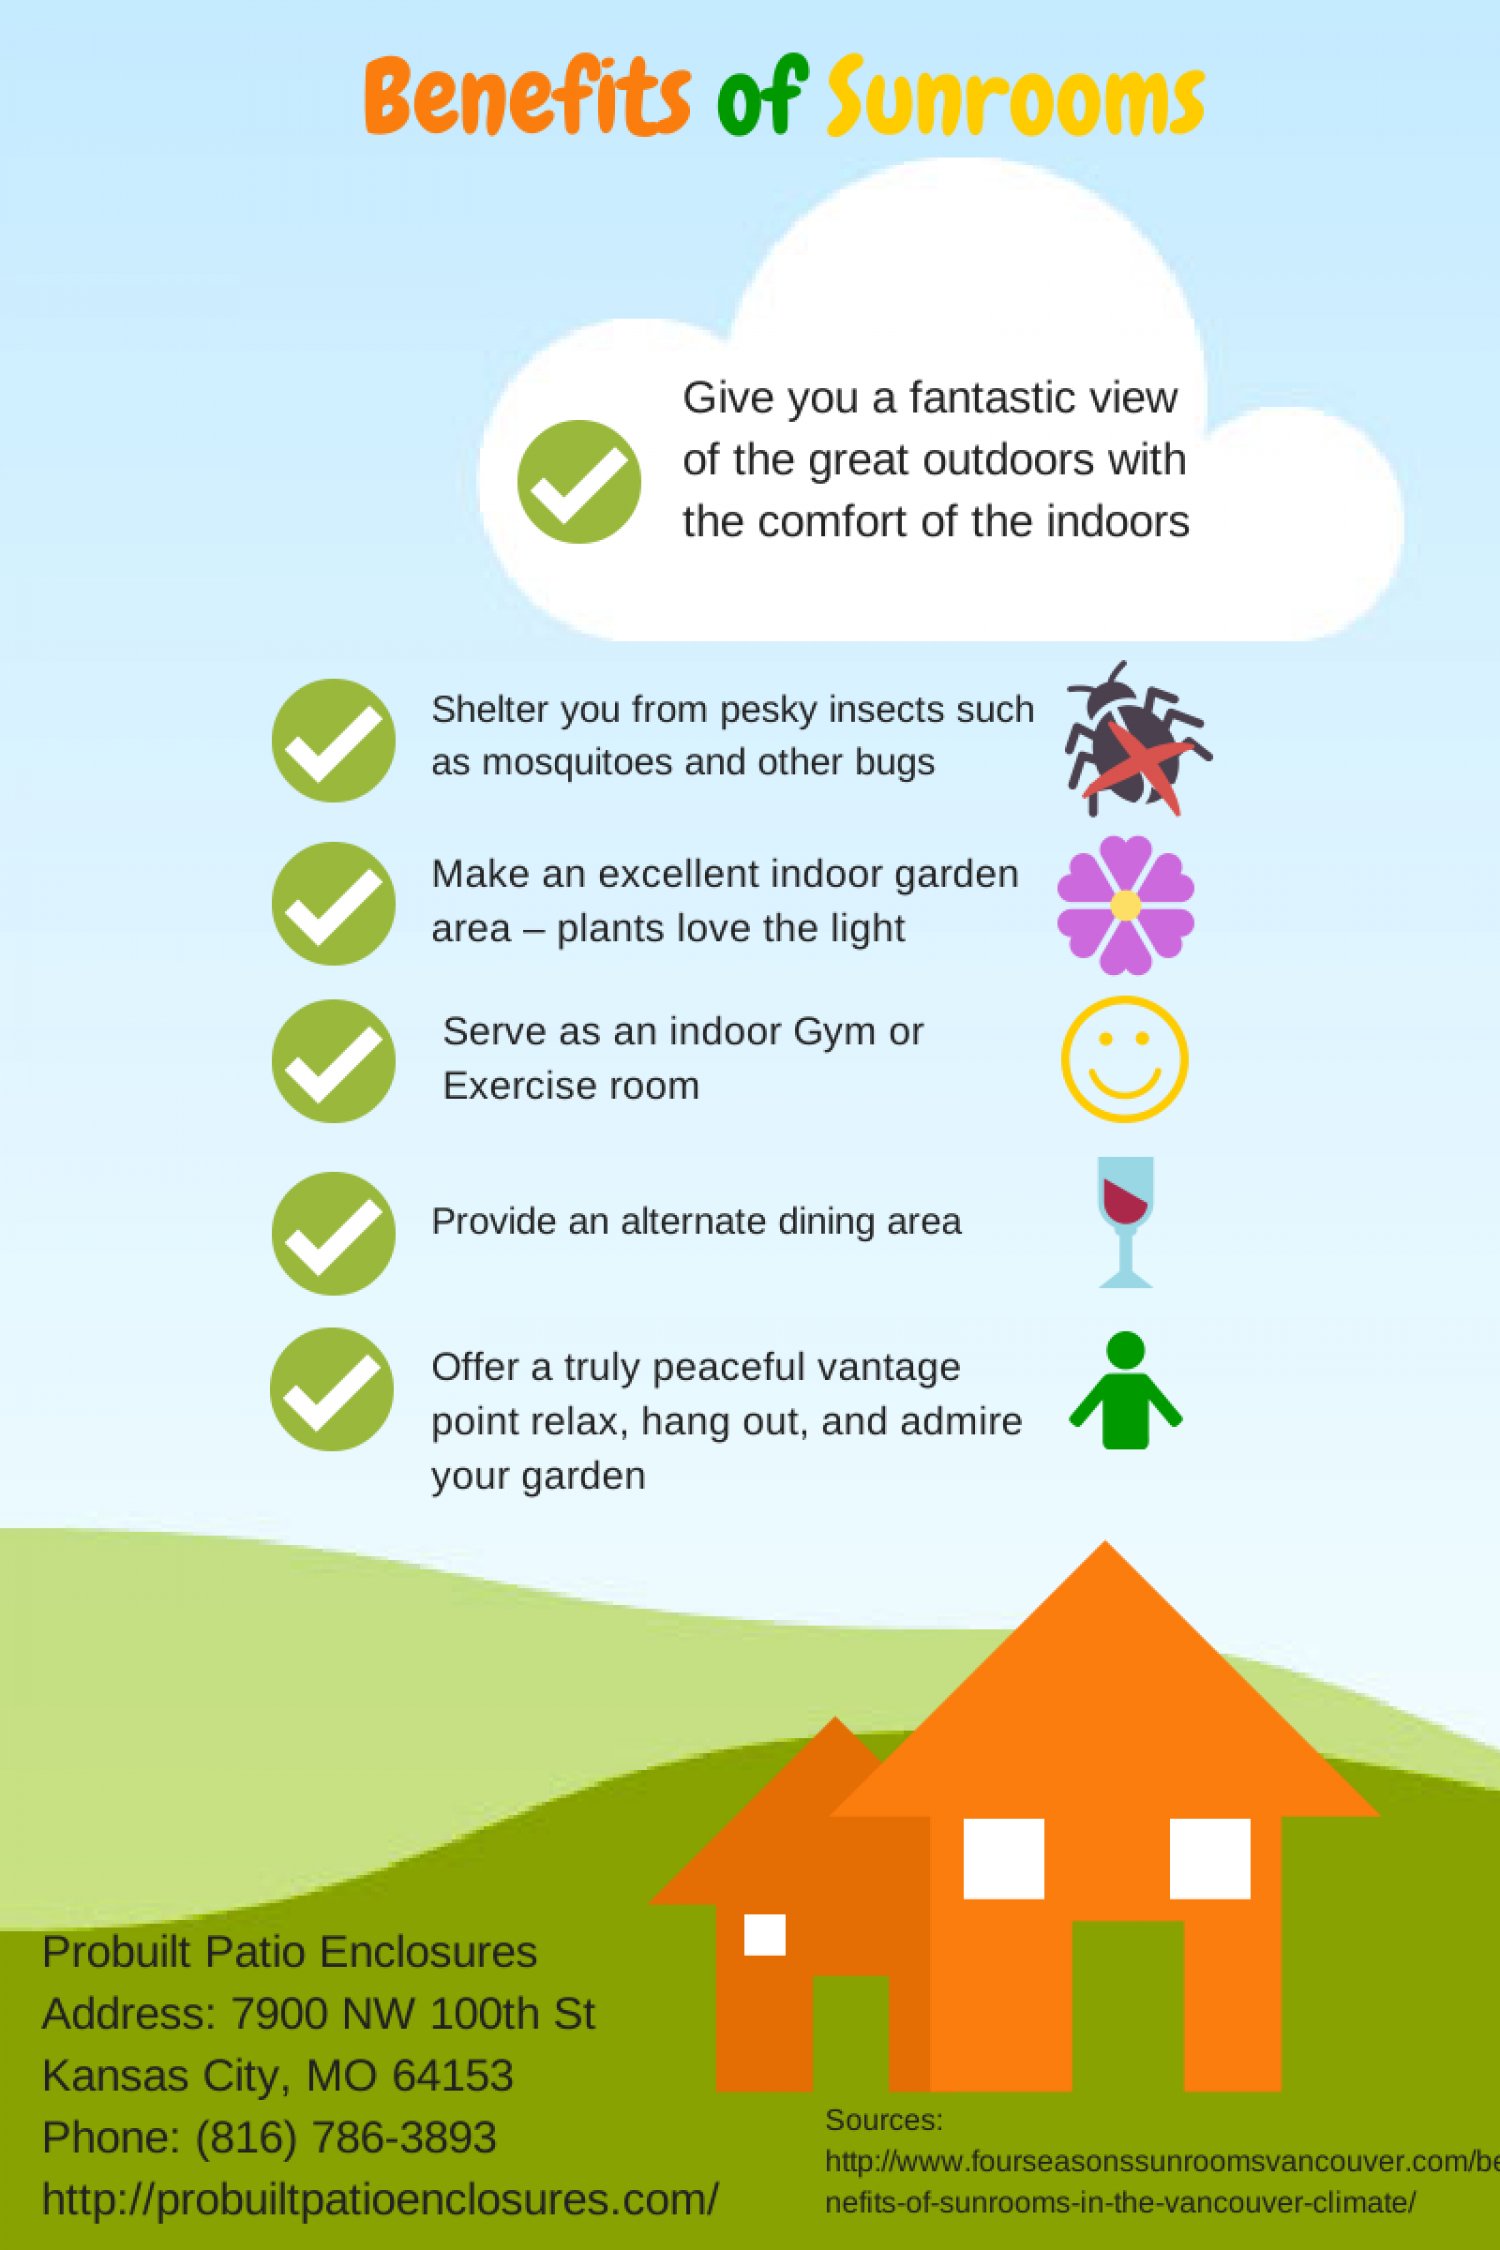 Benefits of Sunrooms Infographic